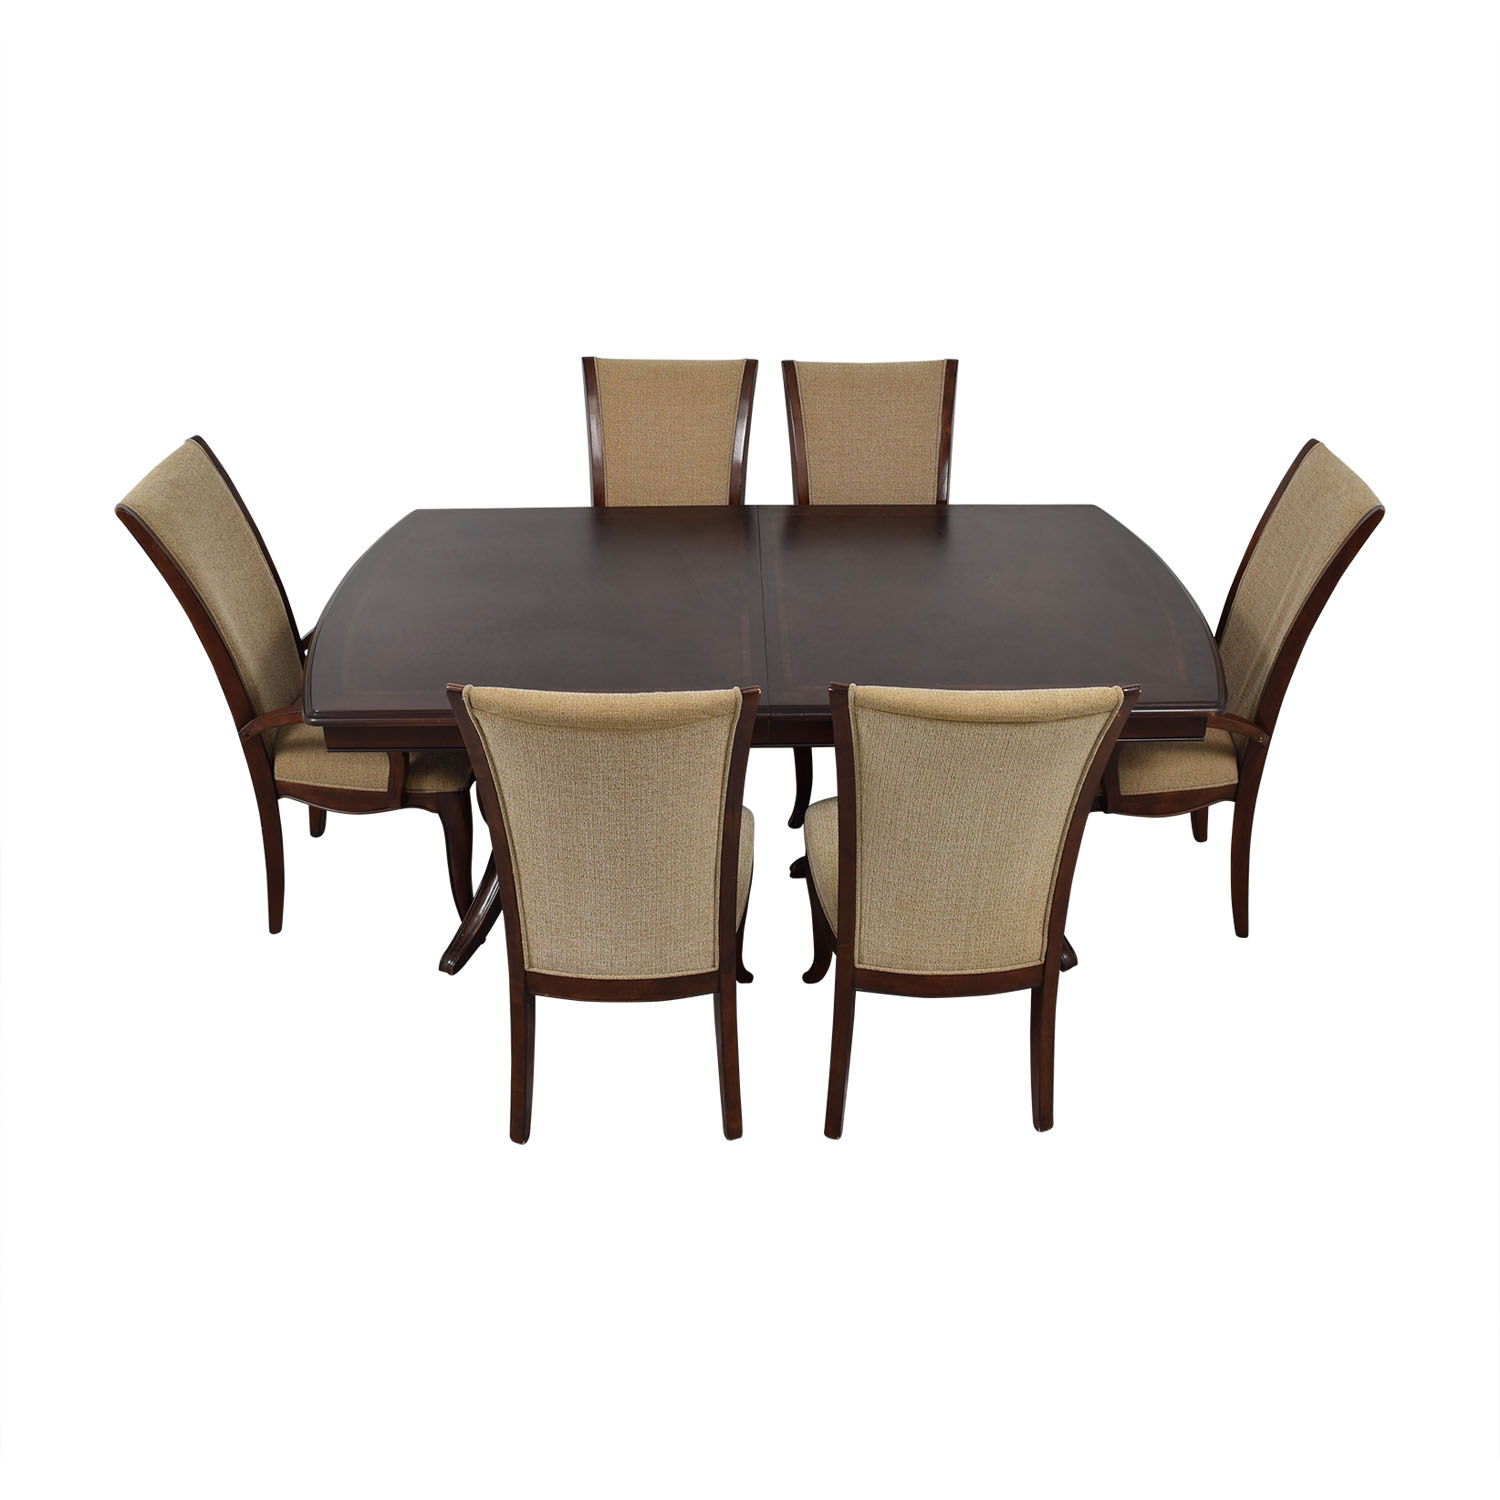 Raymour & Flanigan Raymour & Flanigan Extendable Dining Set with Padded Protector price